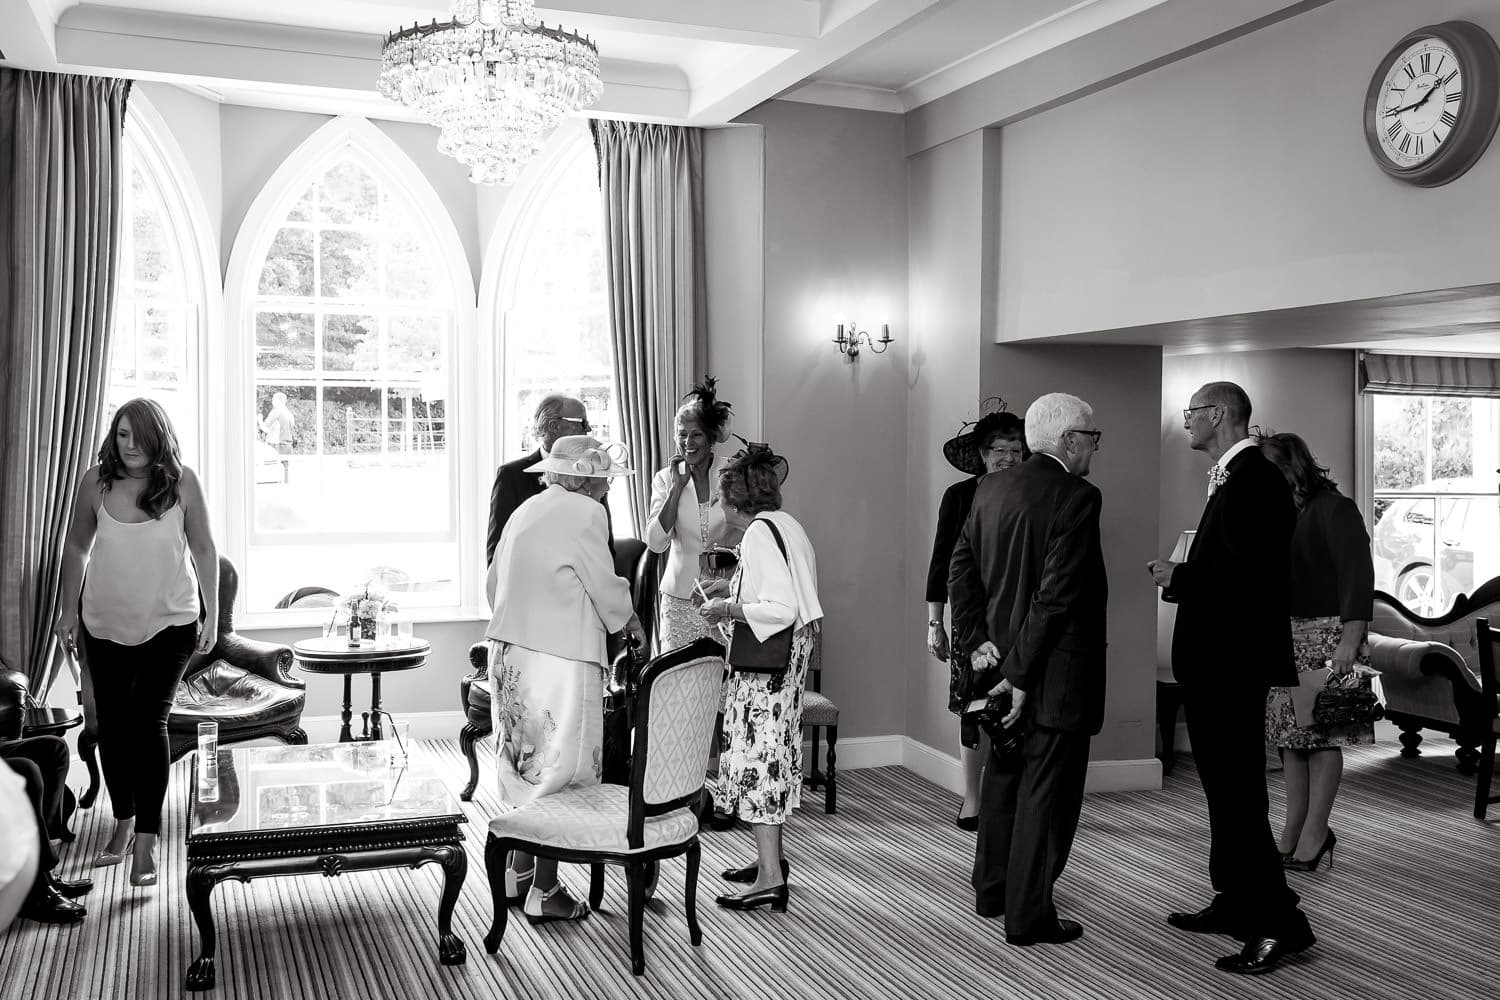 warwick house wedding guests mingle before wedding ceremony